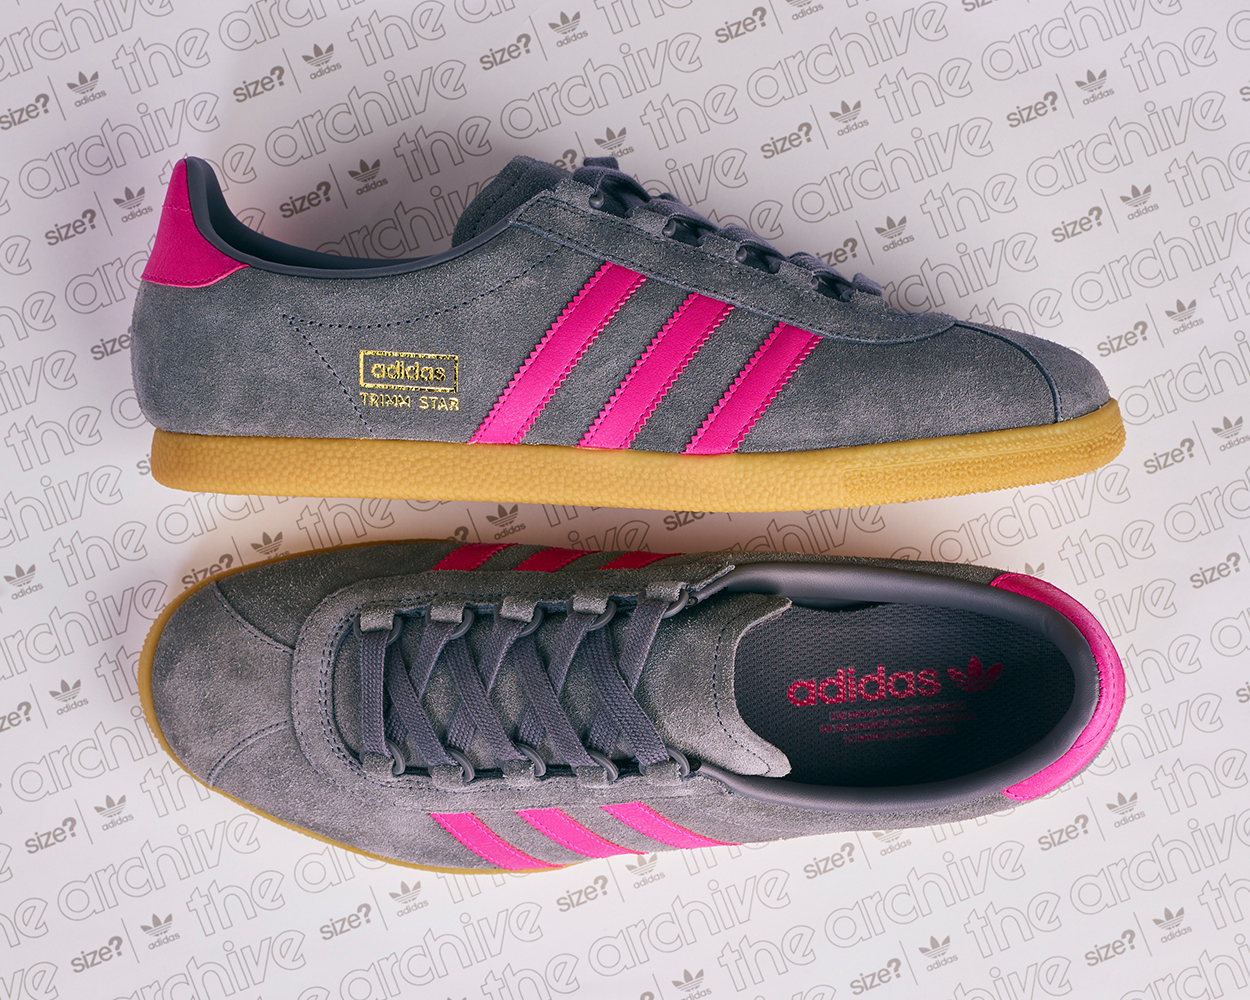 adidas Originals Trimm Star - size? Exclusive